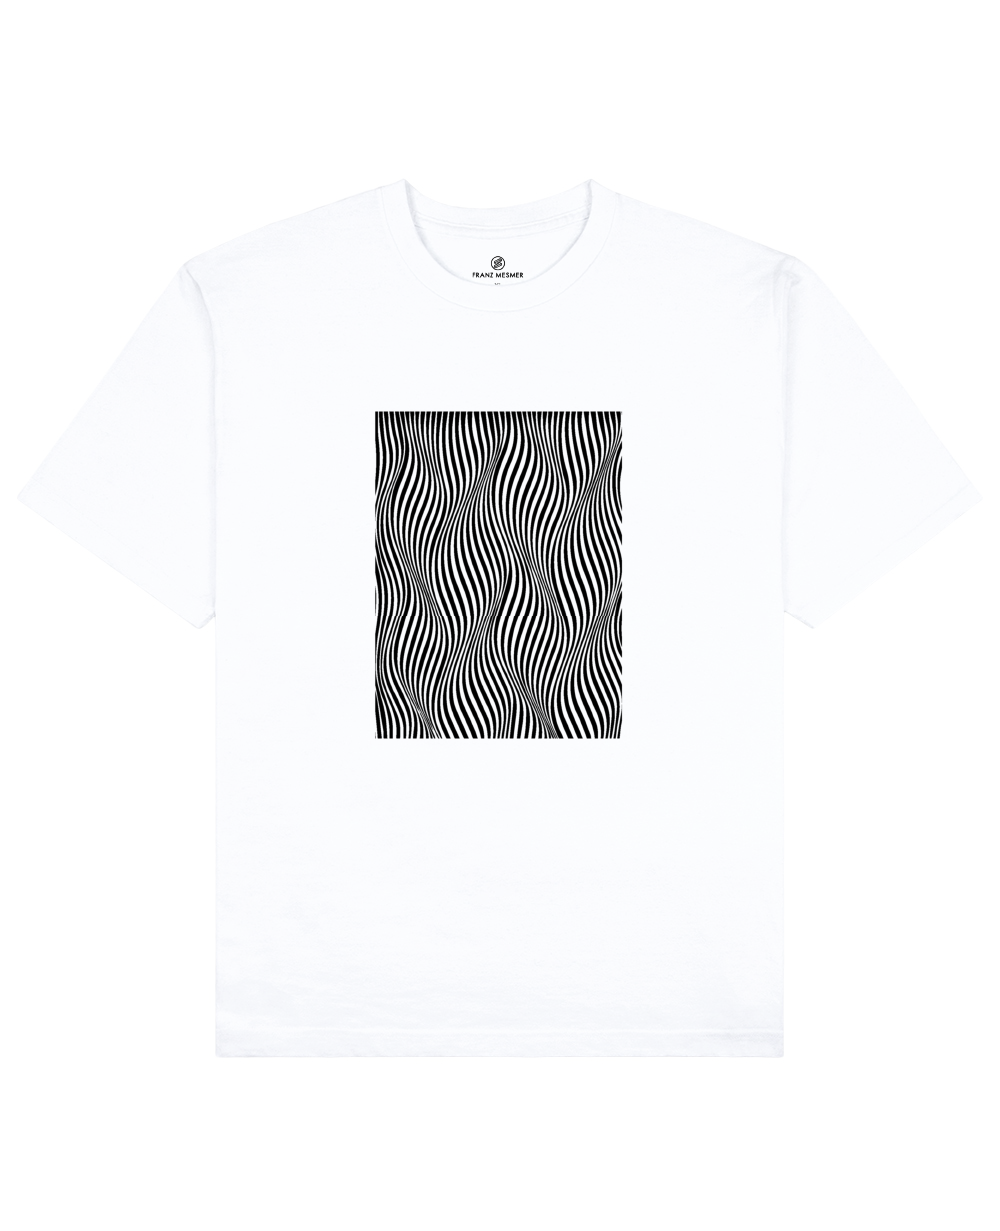 Optical Wave Illusion Print T-Shirt in White - T-Shirts - Franz Mesmer - BRANMA